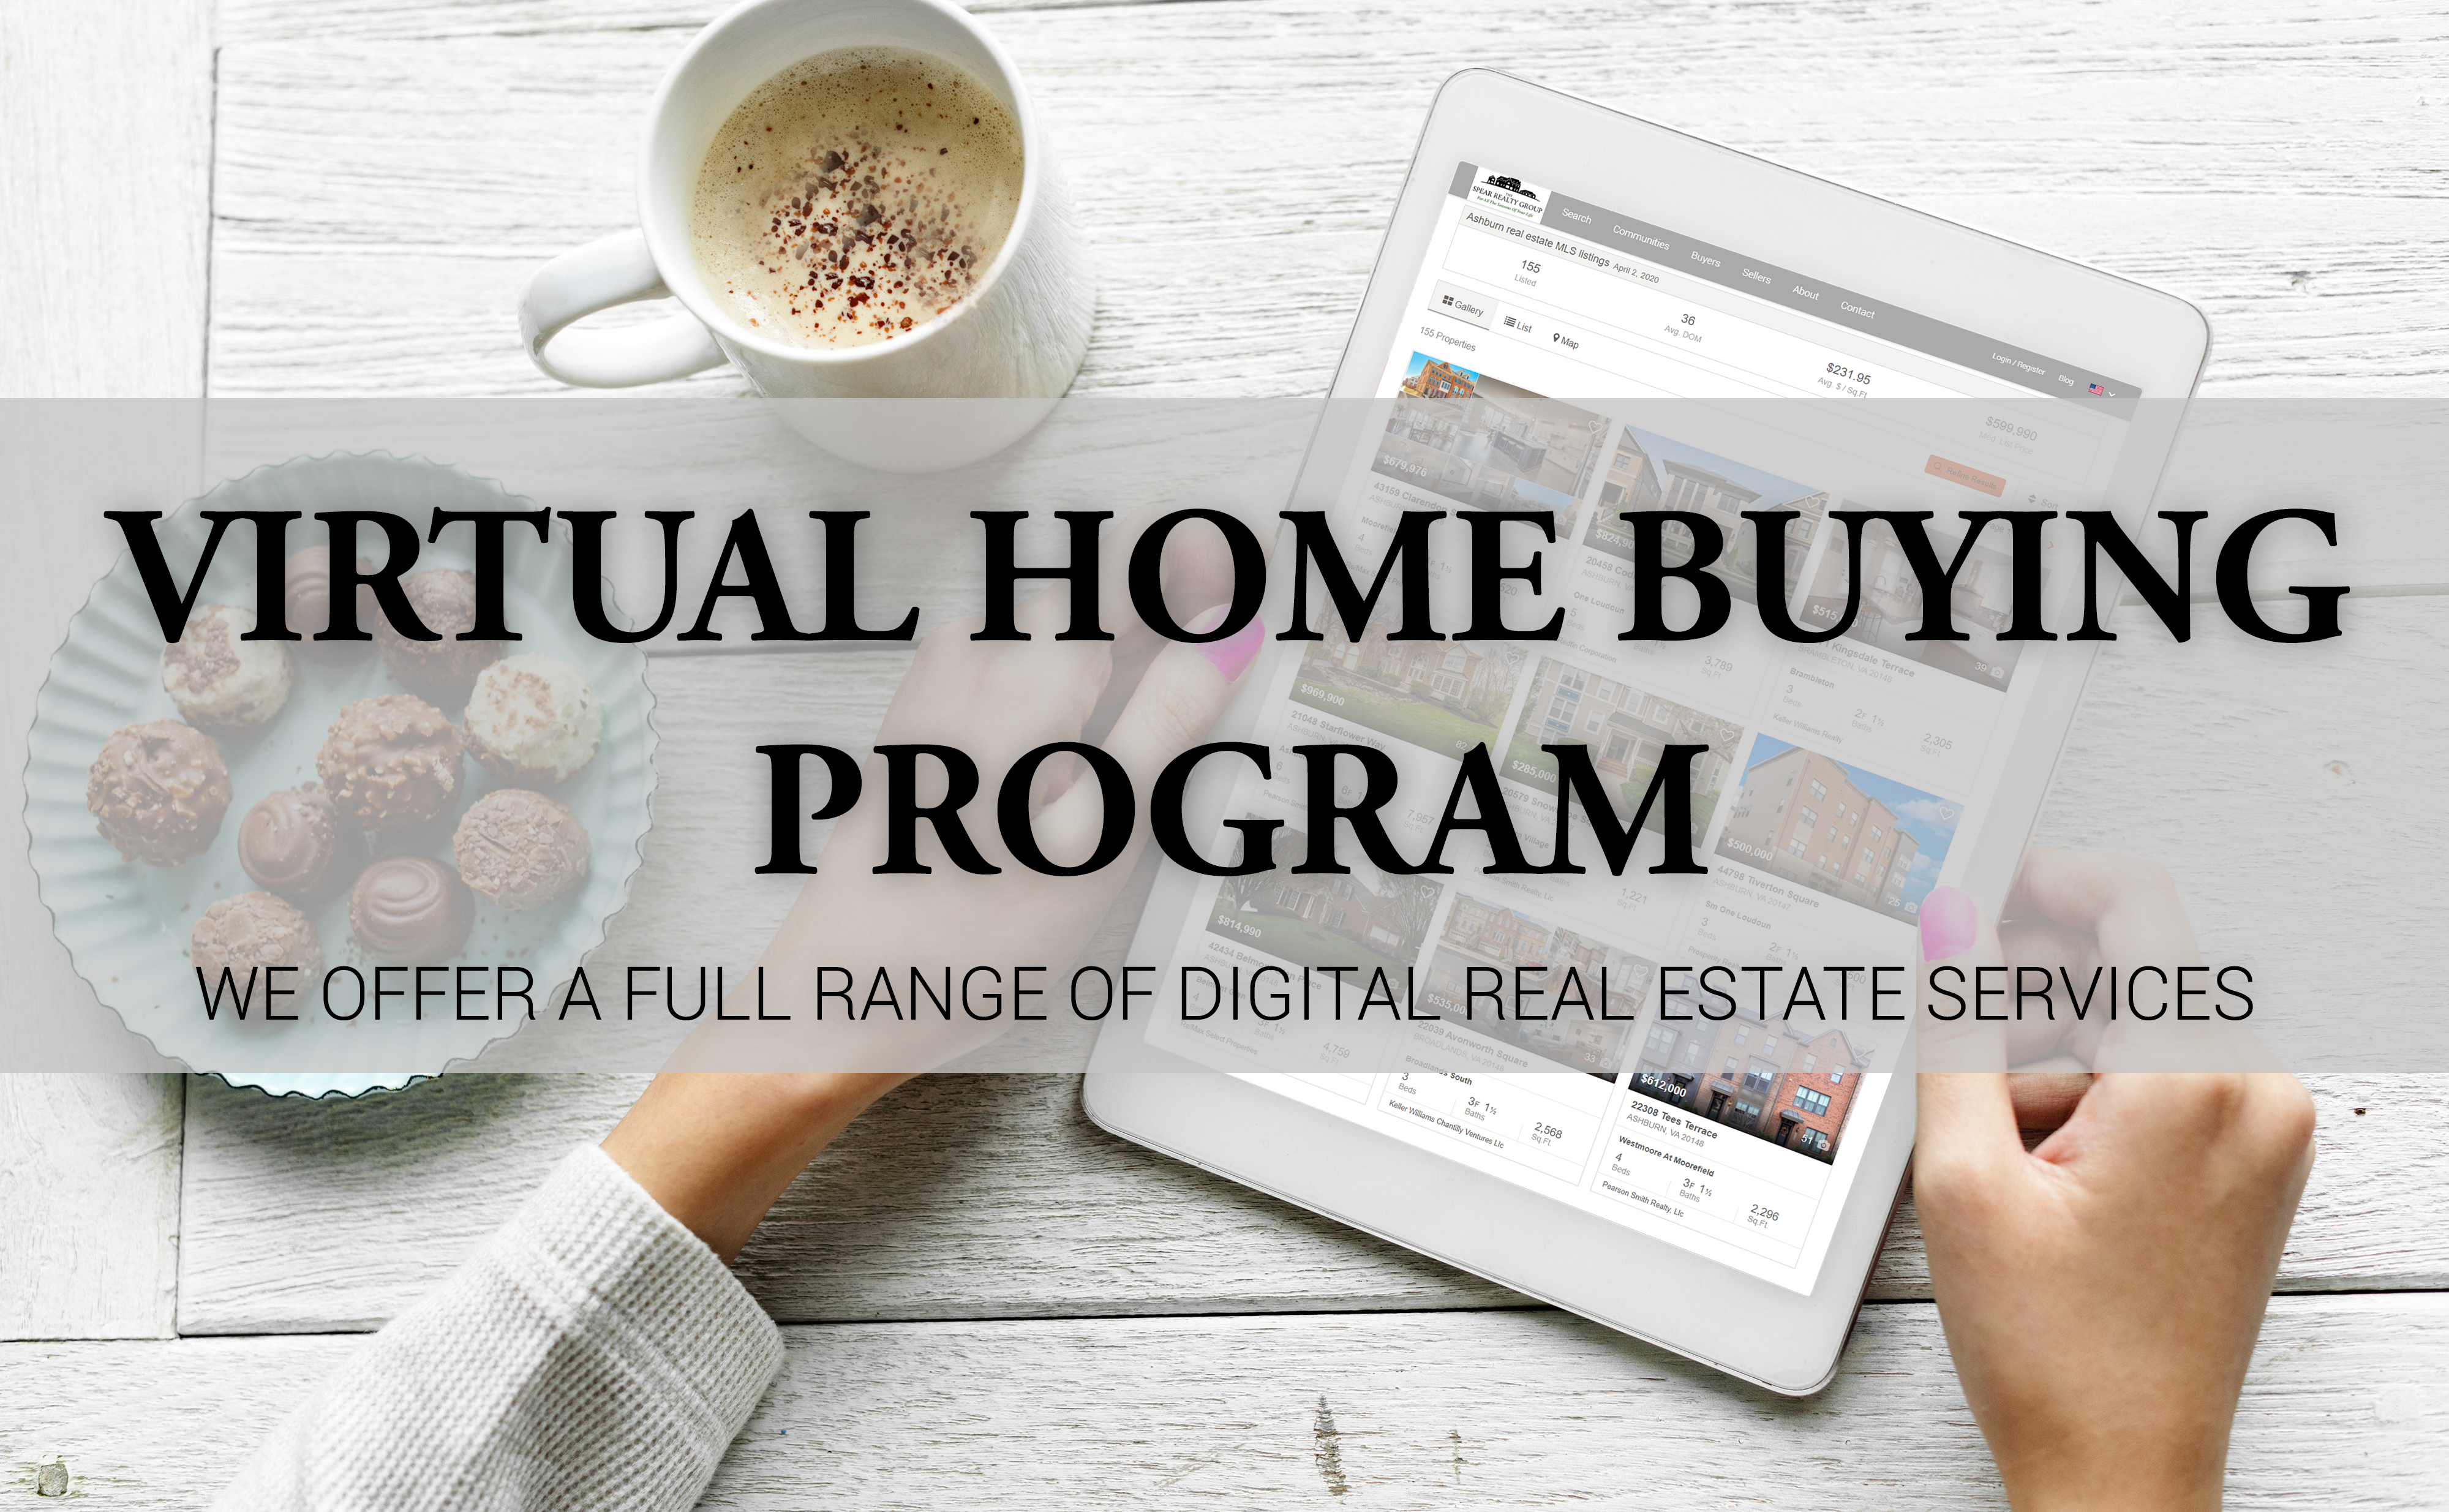 The Spear Realty Group Virtual Home Buying Program